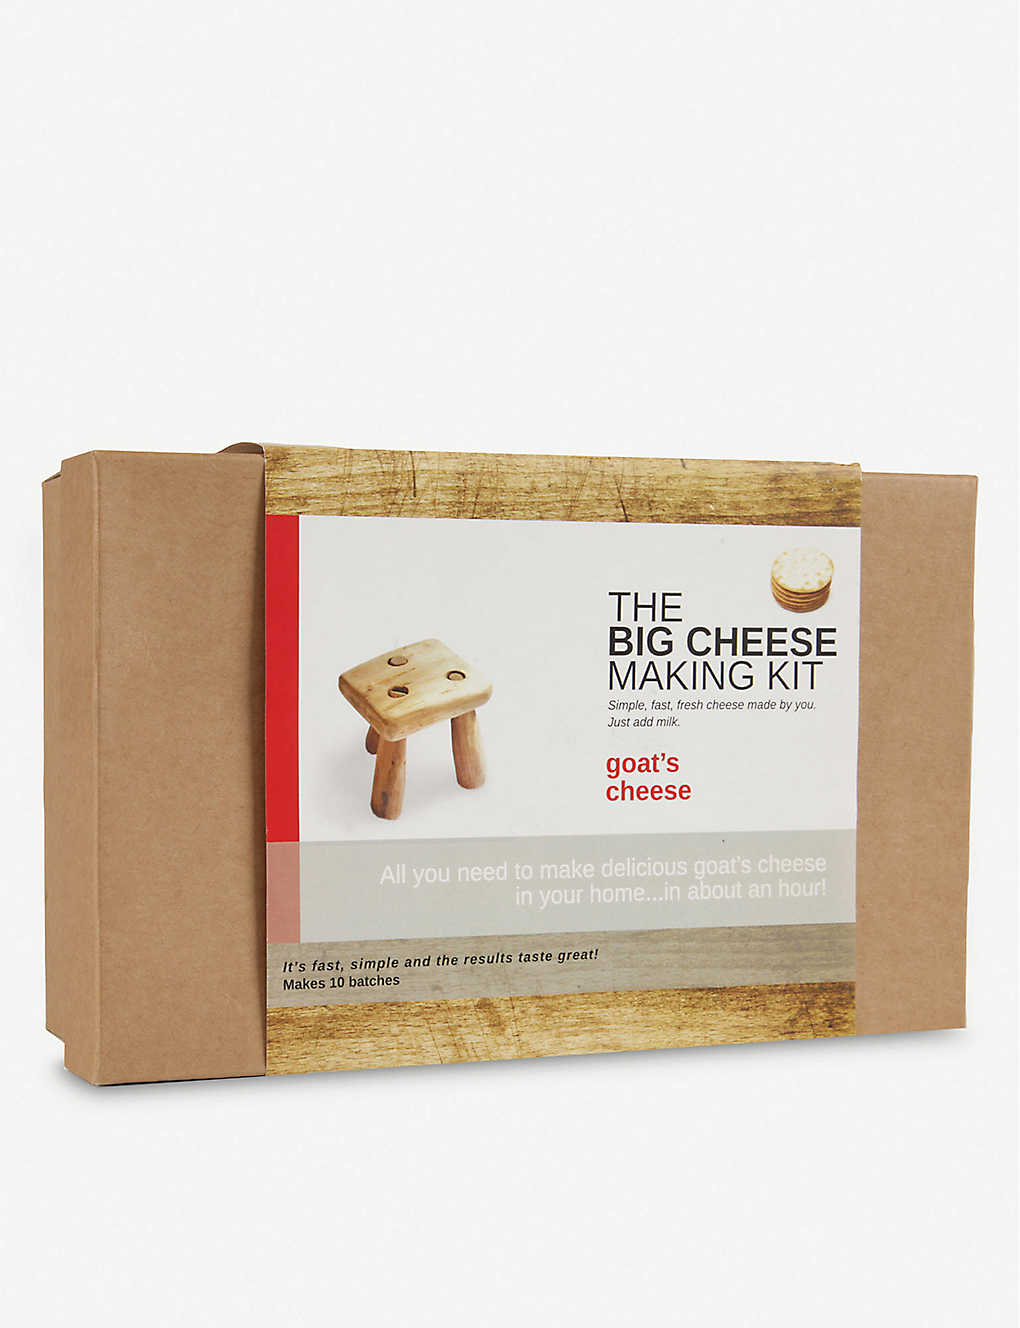 THE BIG CHEESE MAKING KIT: Goat's Cheese Making Kit